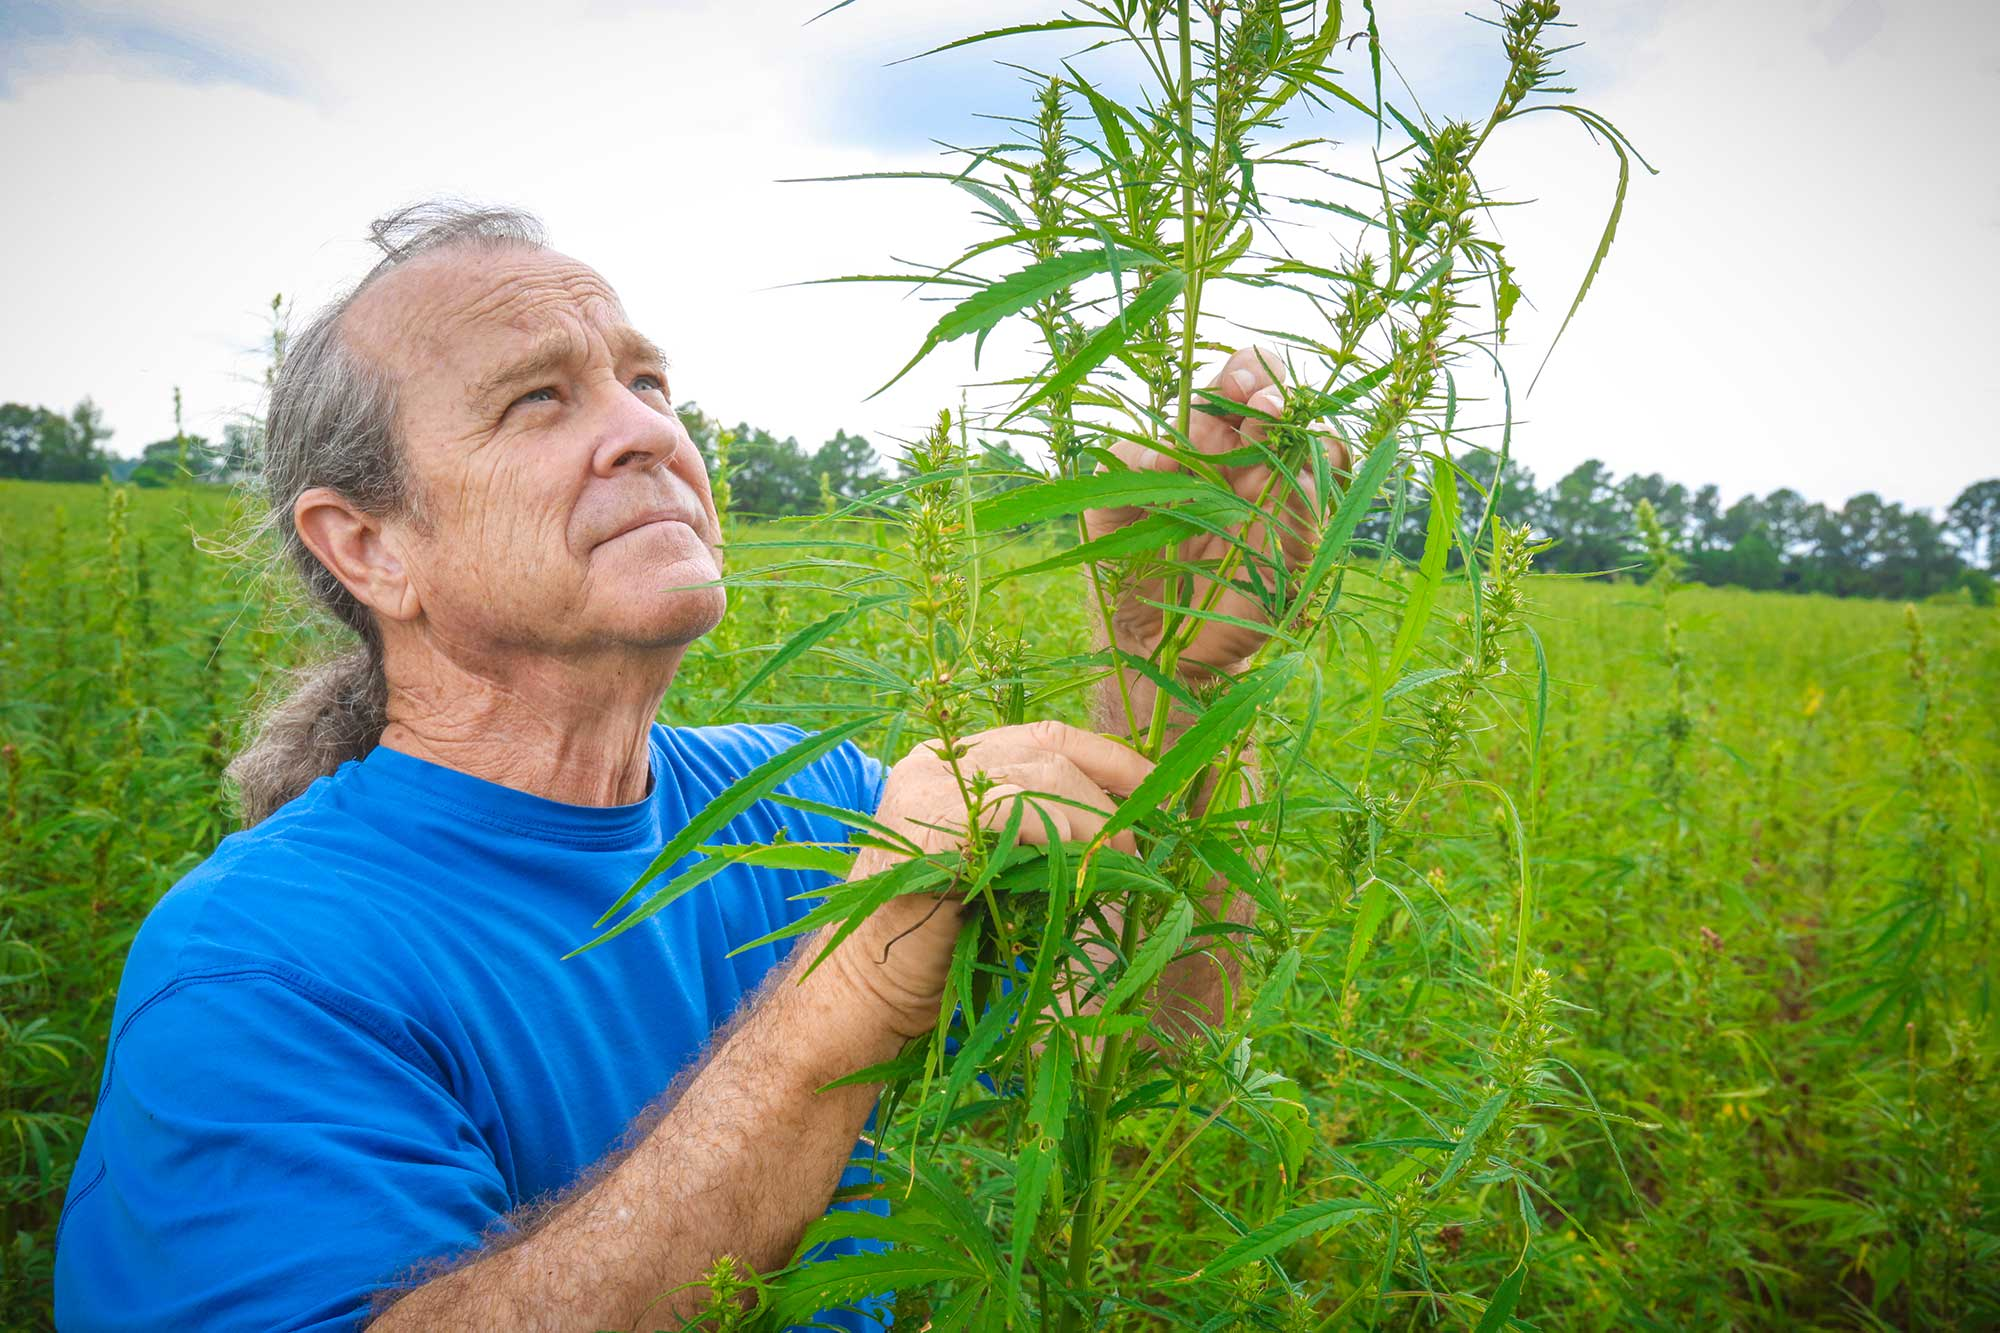 Tobacco growers may find new avenue in hemp farming | AGDAILY